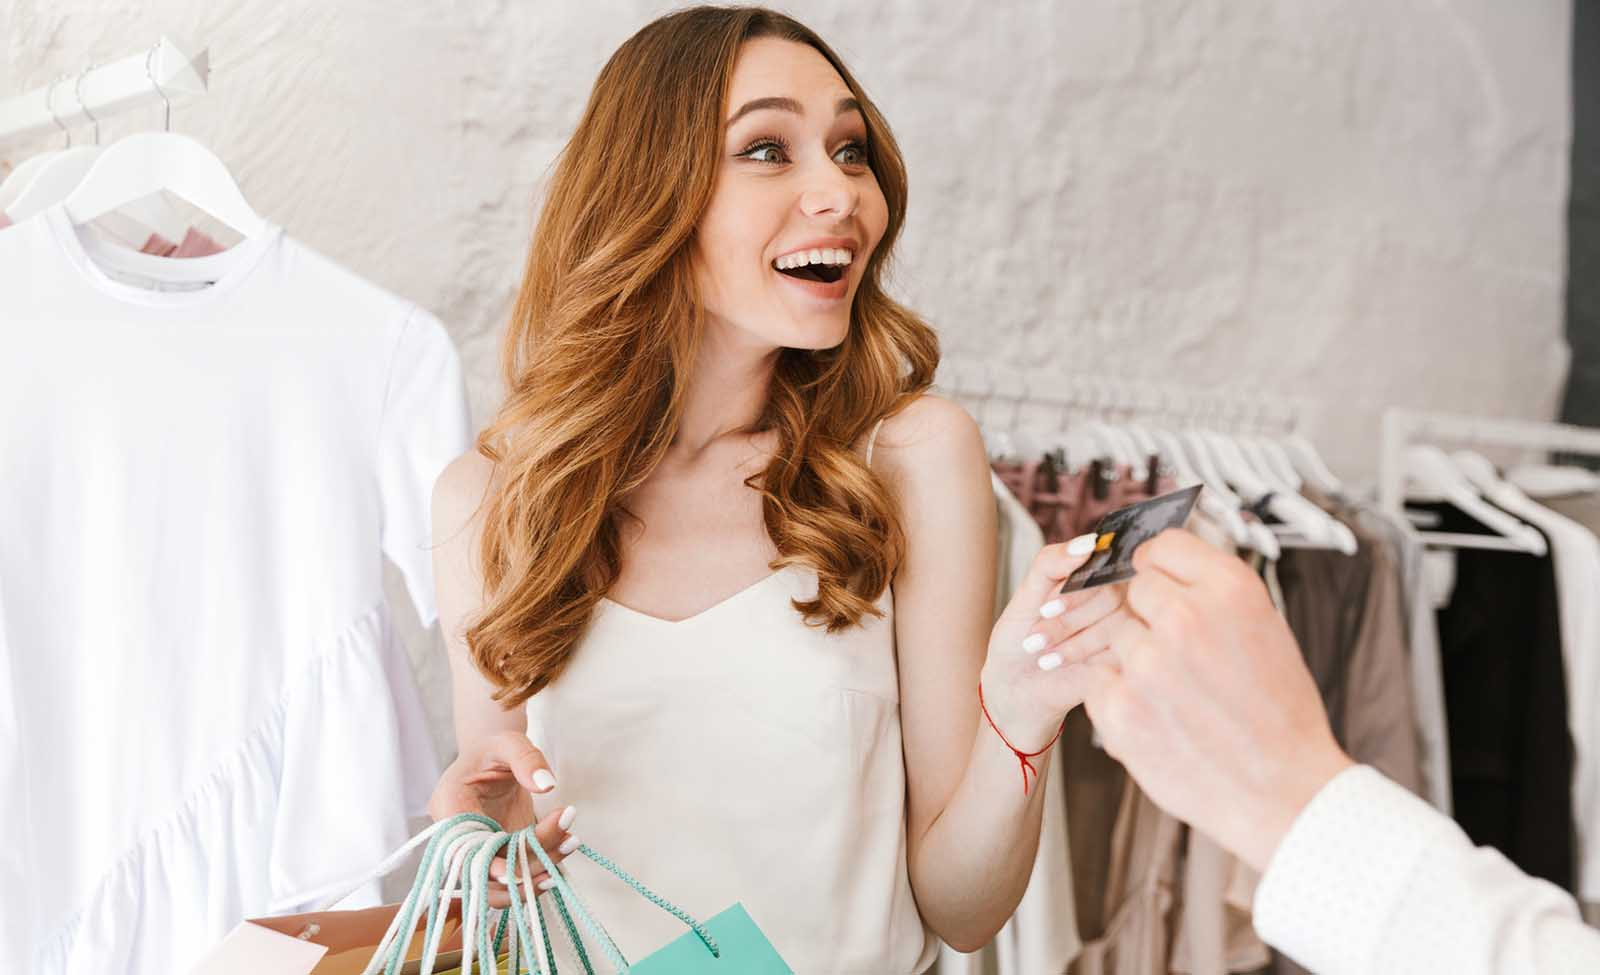 How to get approved for store credit cards